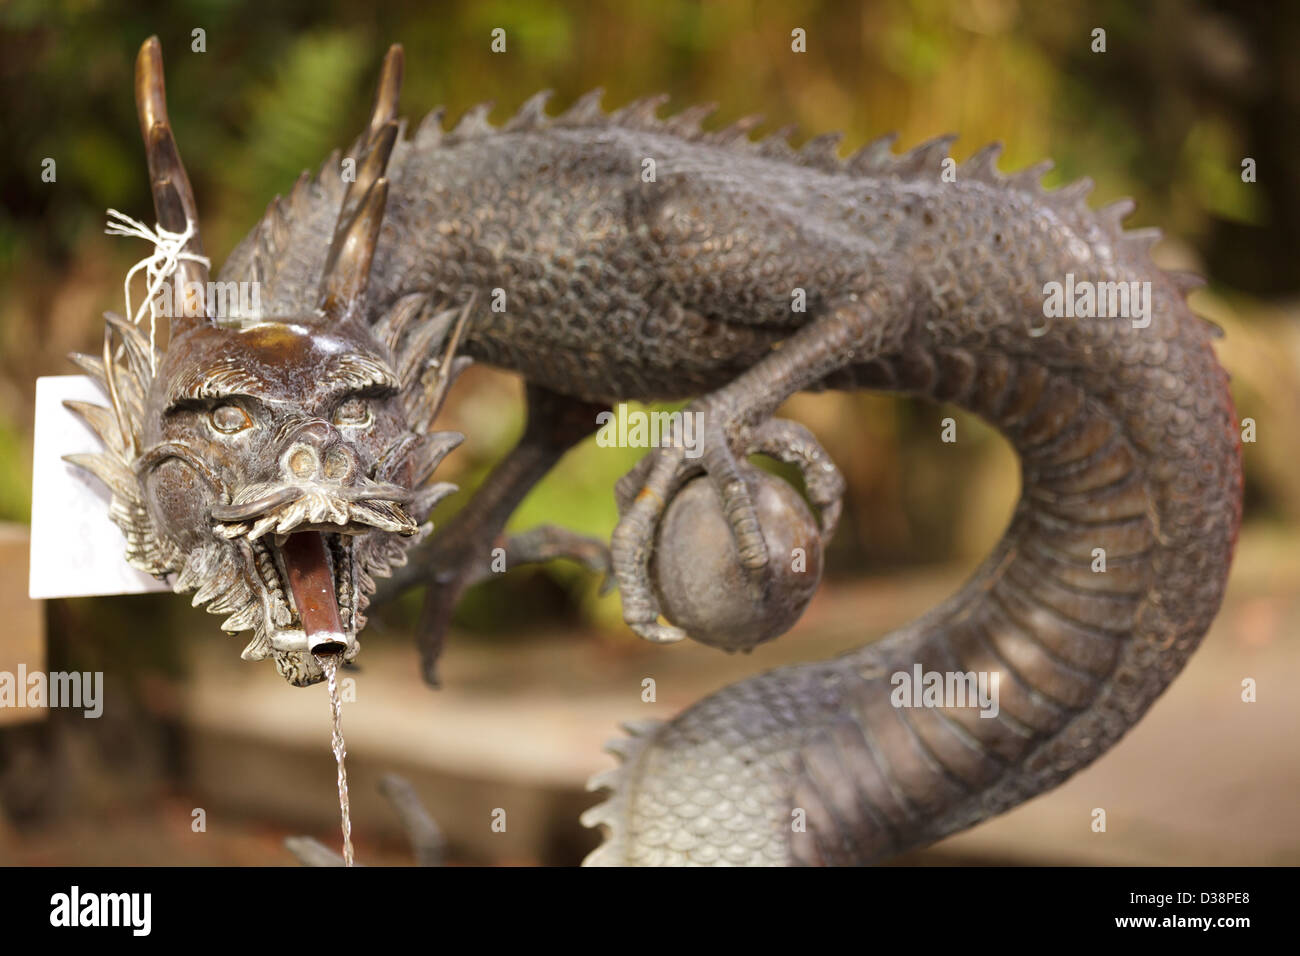 Japanese Dragon Statue Stock Photos & Japanese Dragon Statue